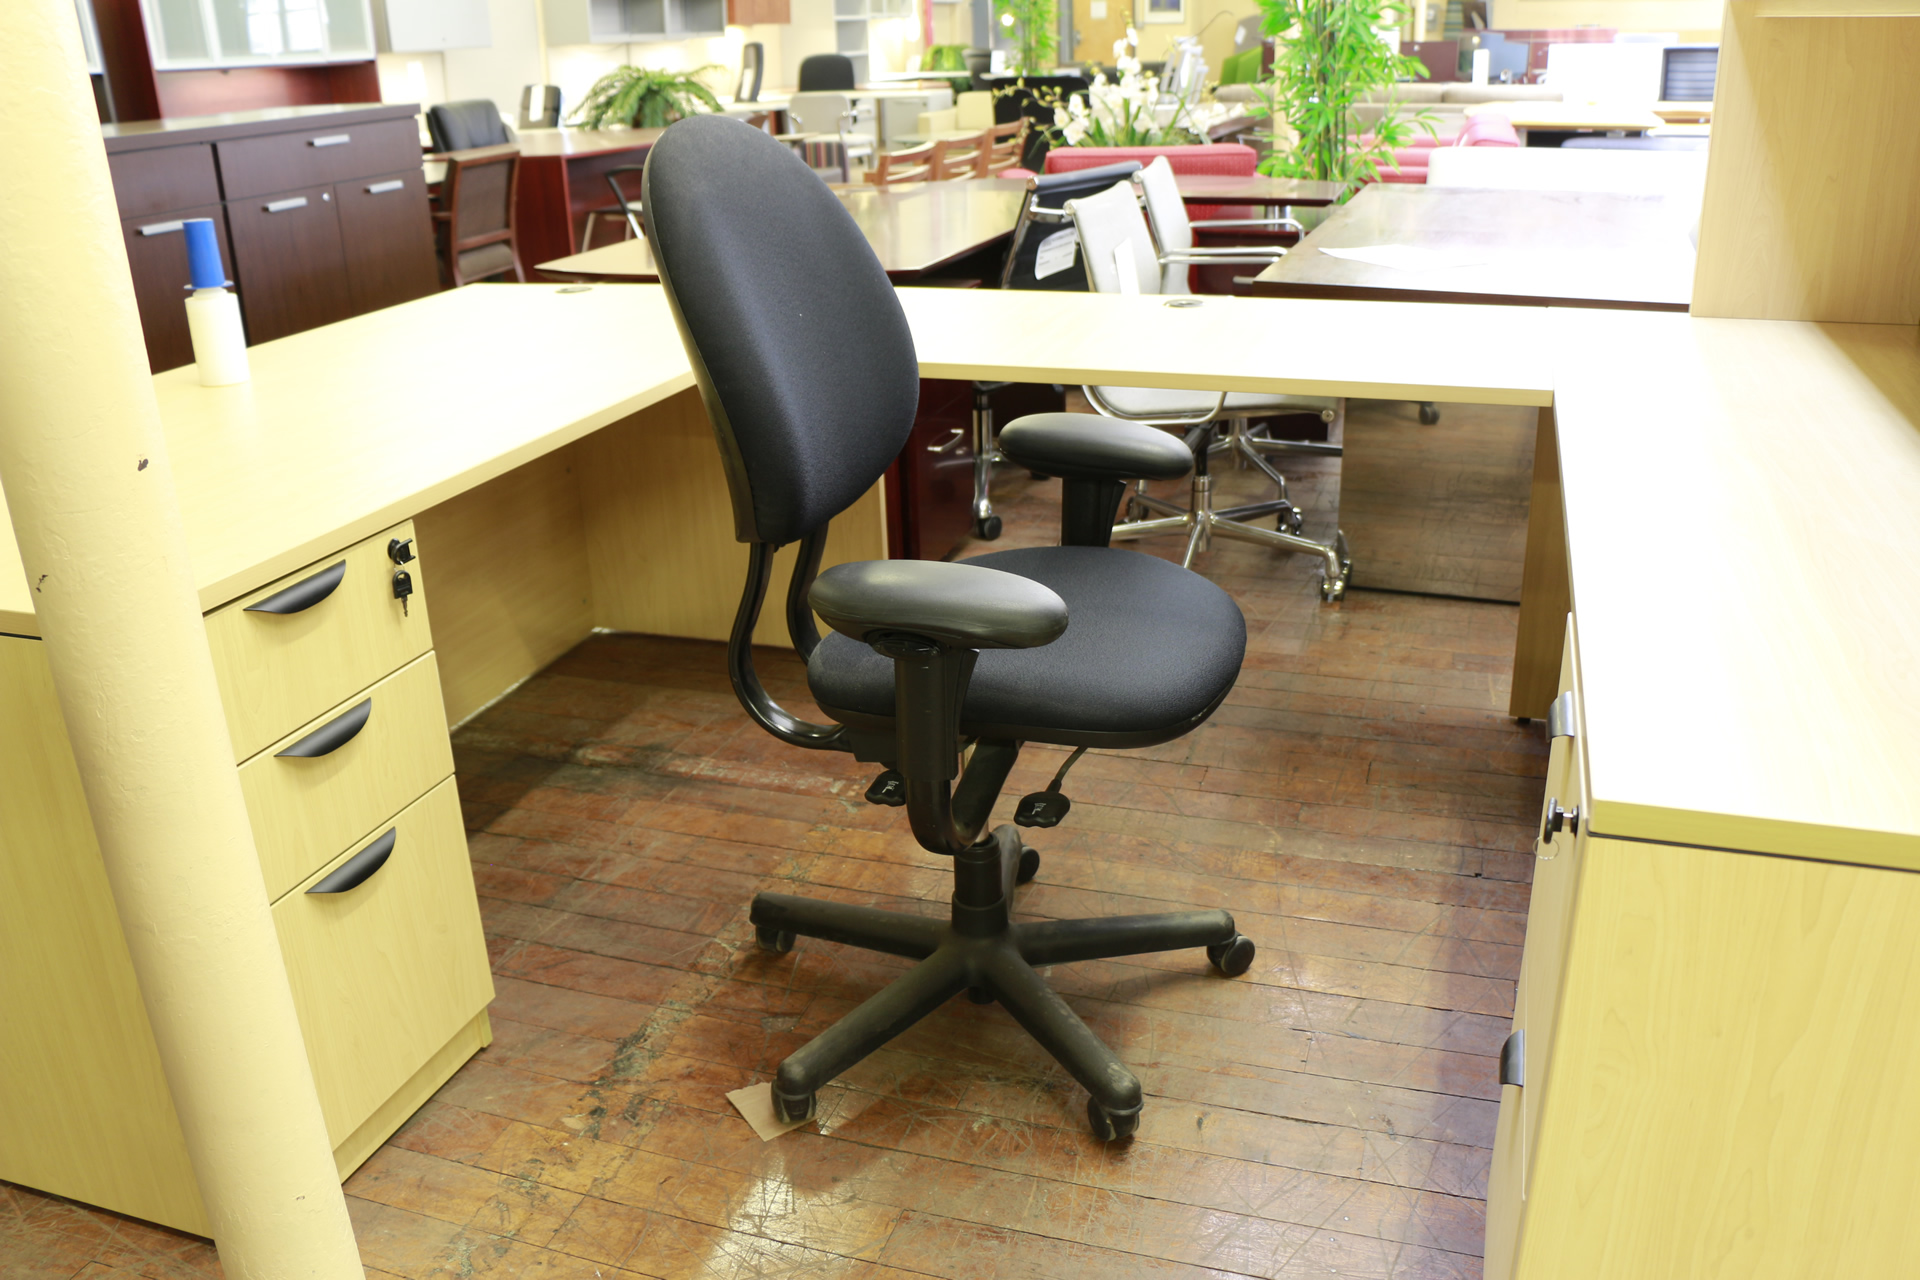 peartreeofficefurniture_peartreeofficefurniture_peartreeofficefurniture_2015-05-15_21-01-08.jpg